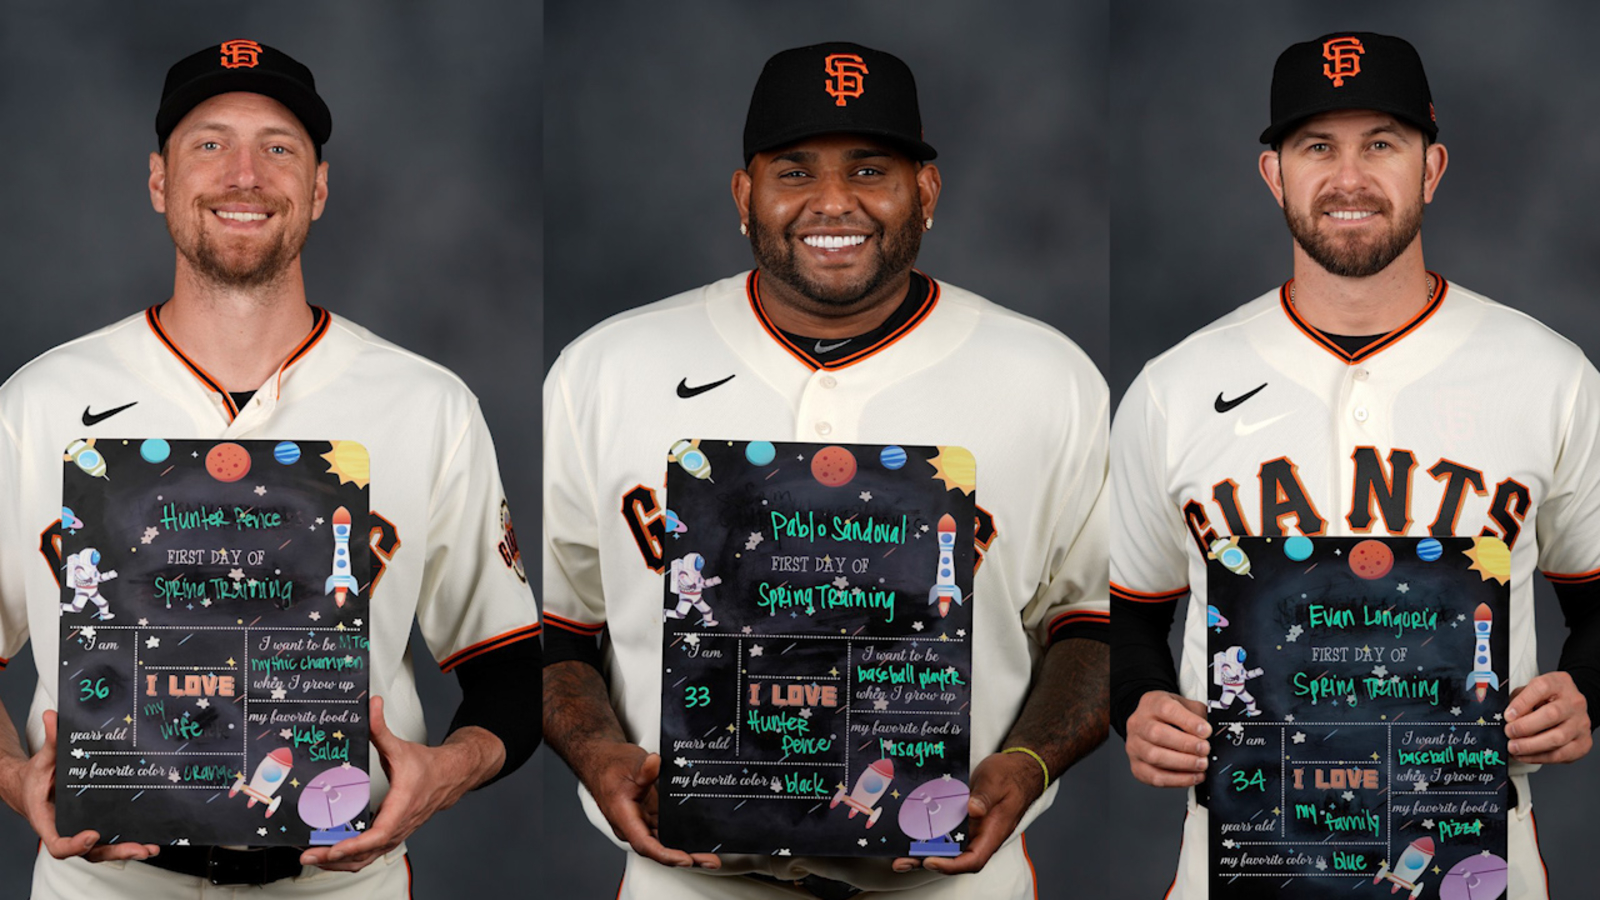 San Francisco Giants pose for 'back-to-school' photos on 1st day of Spring Training 2020